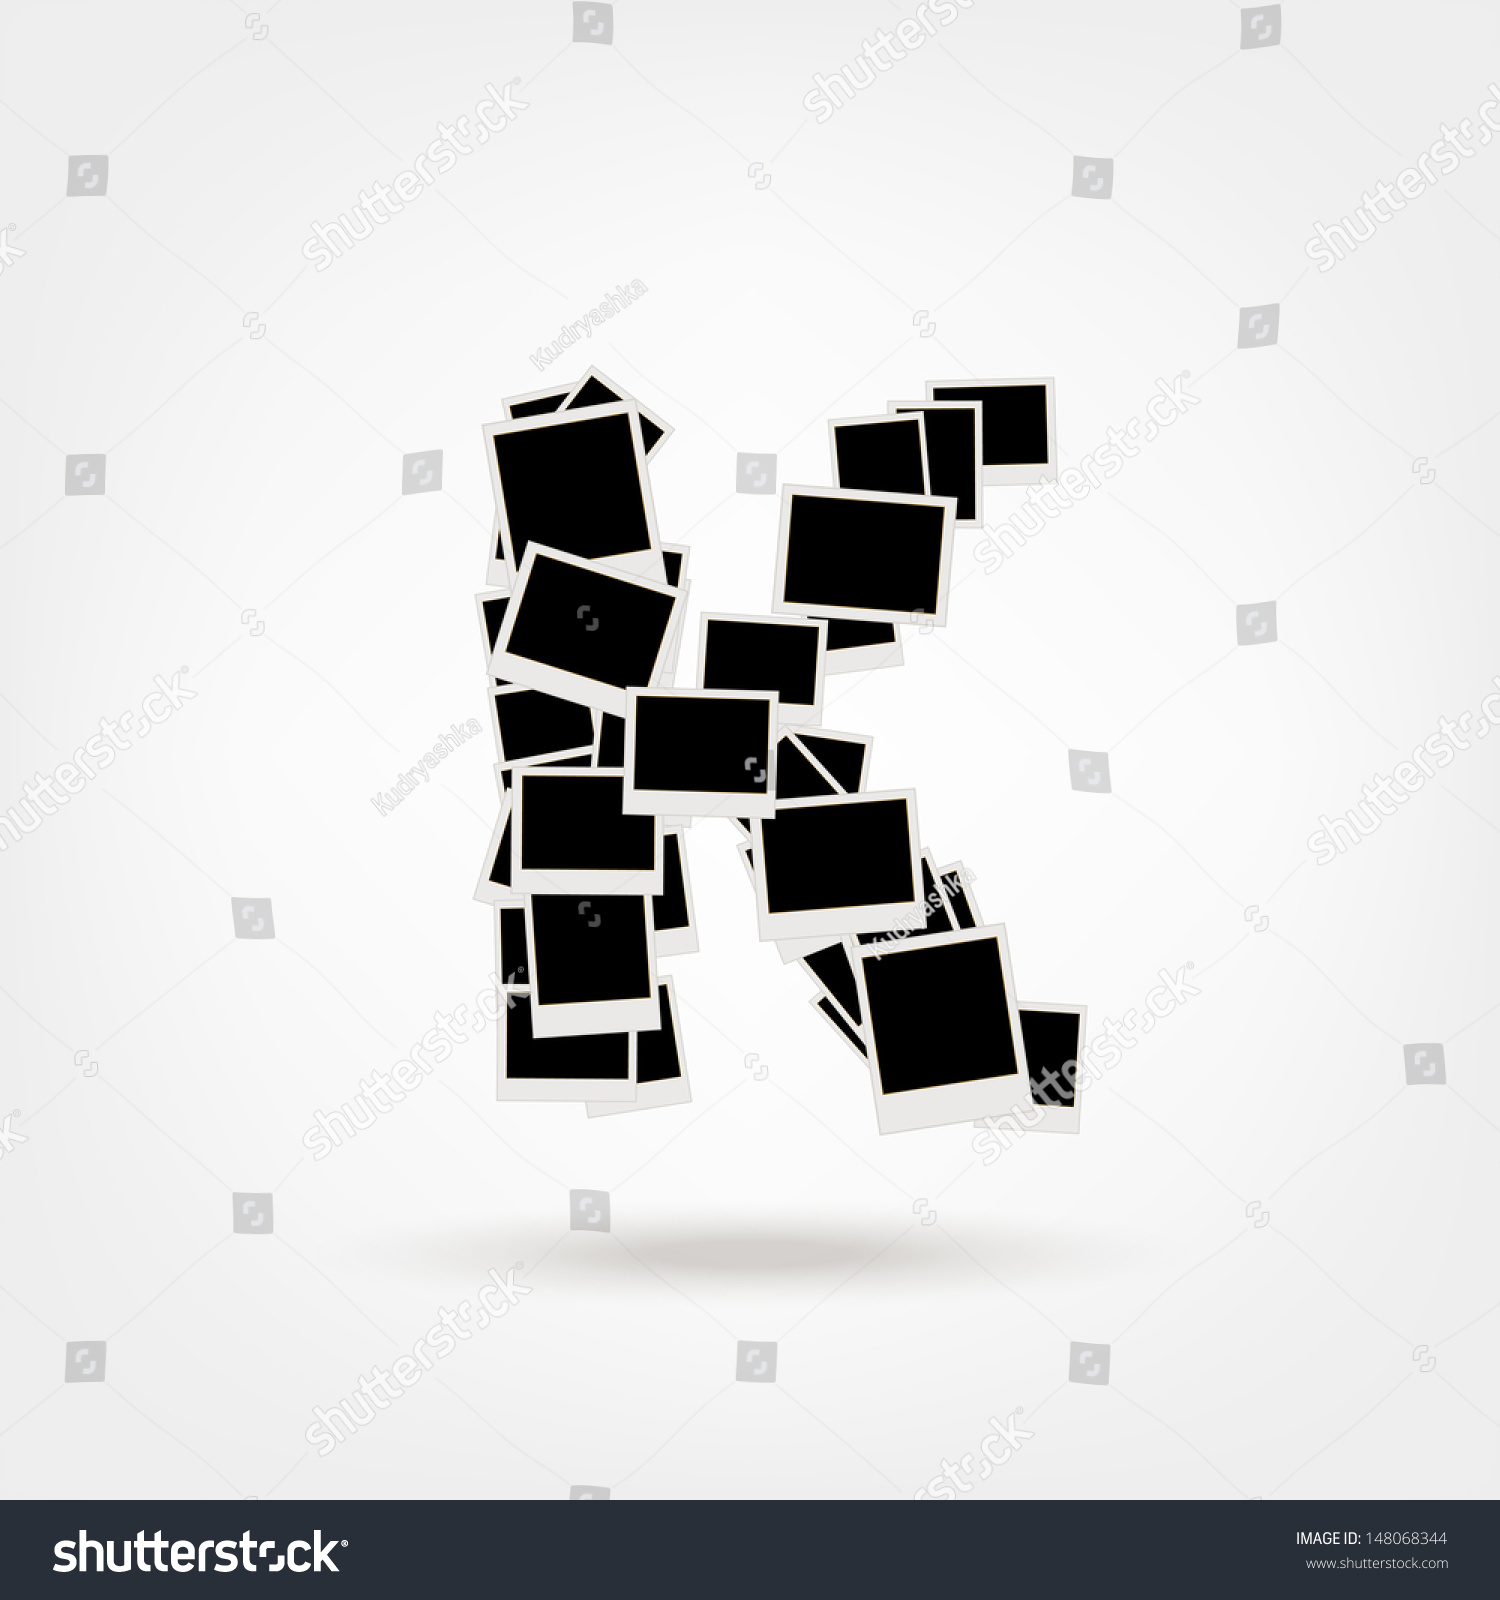 Letter K Made Photo Frames Insert Stock Vector (Royalty Free ...